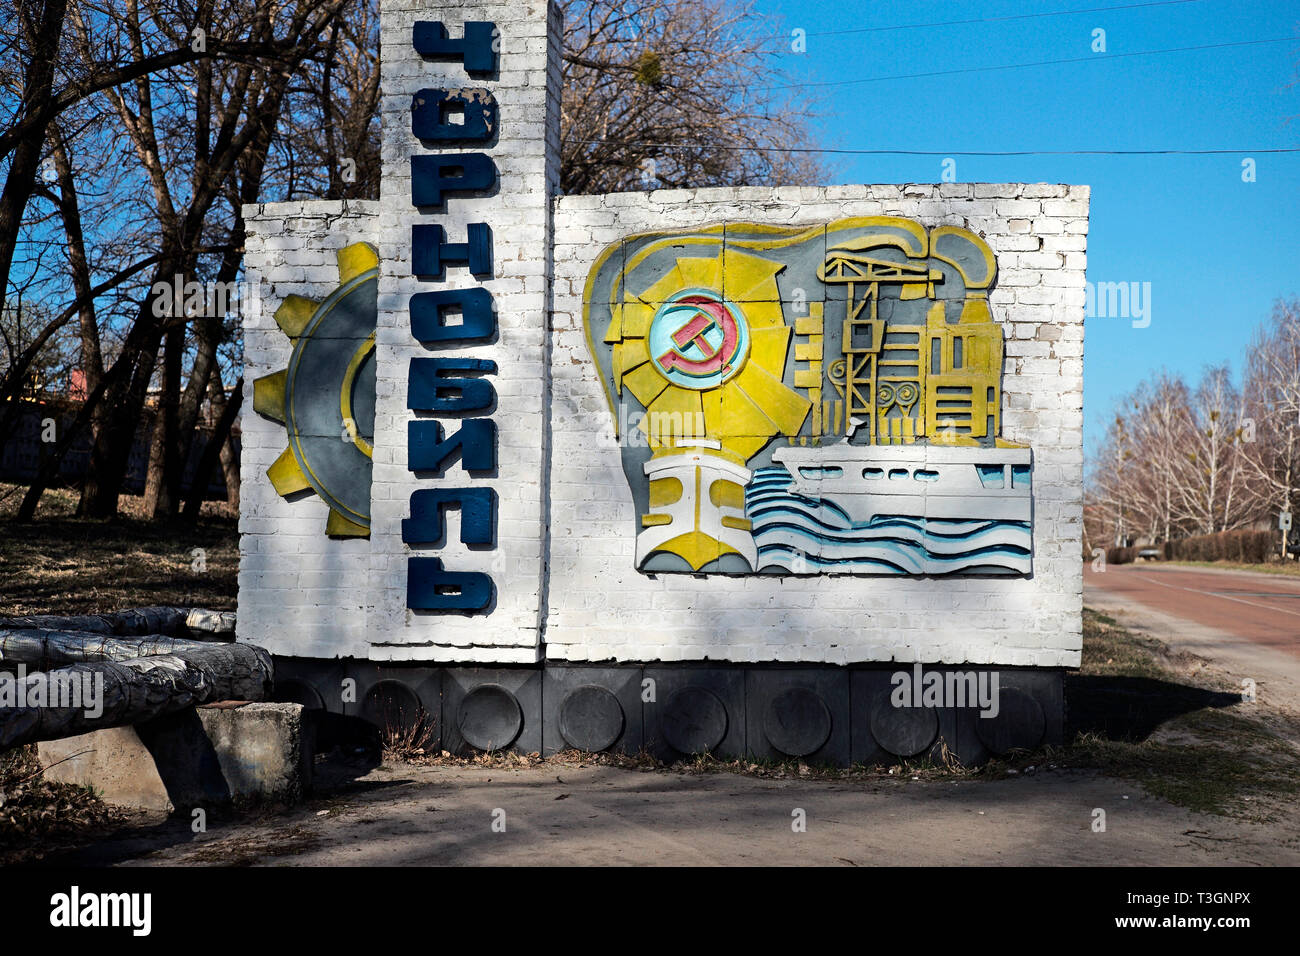 City sign of Chernobyl Town, Ukraine, April 2019. The town, after which the nuclear power plant was named, is still inhabitated by workers associated  - Stock Image